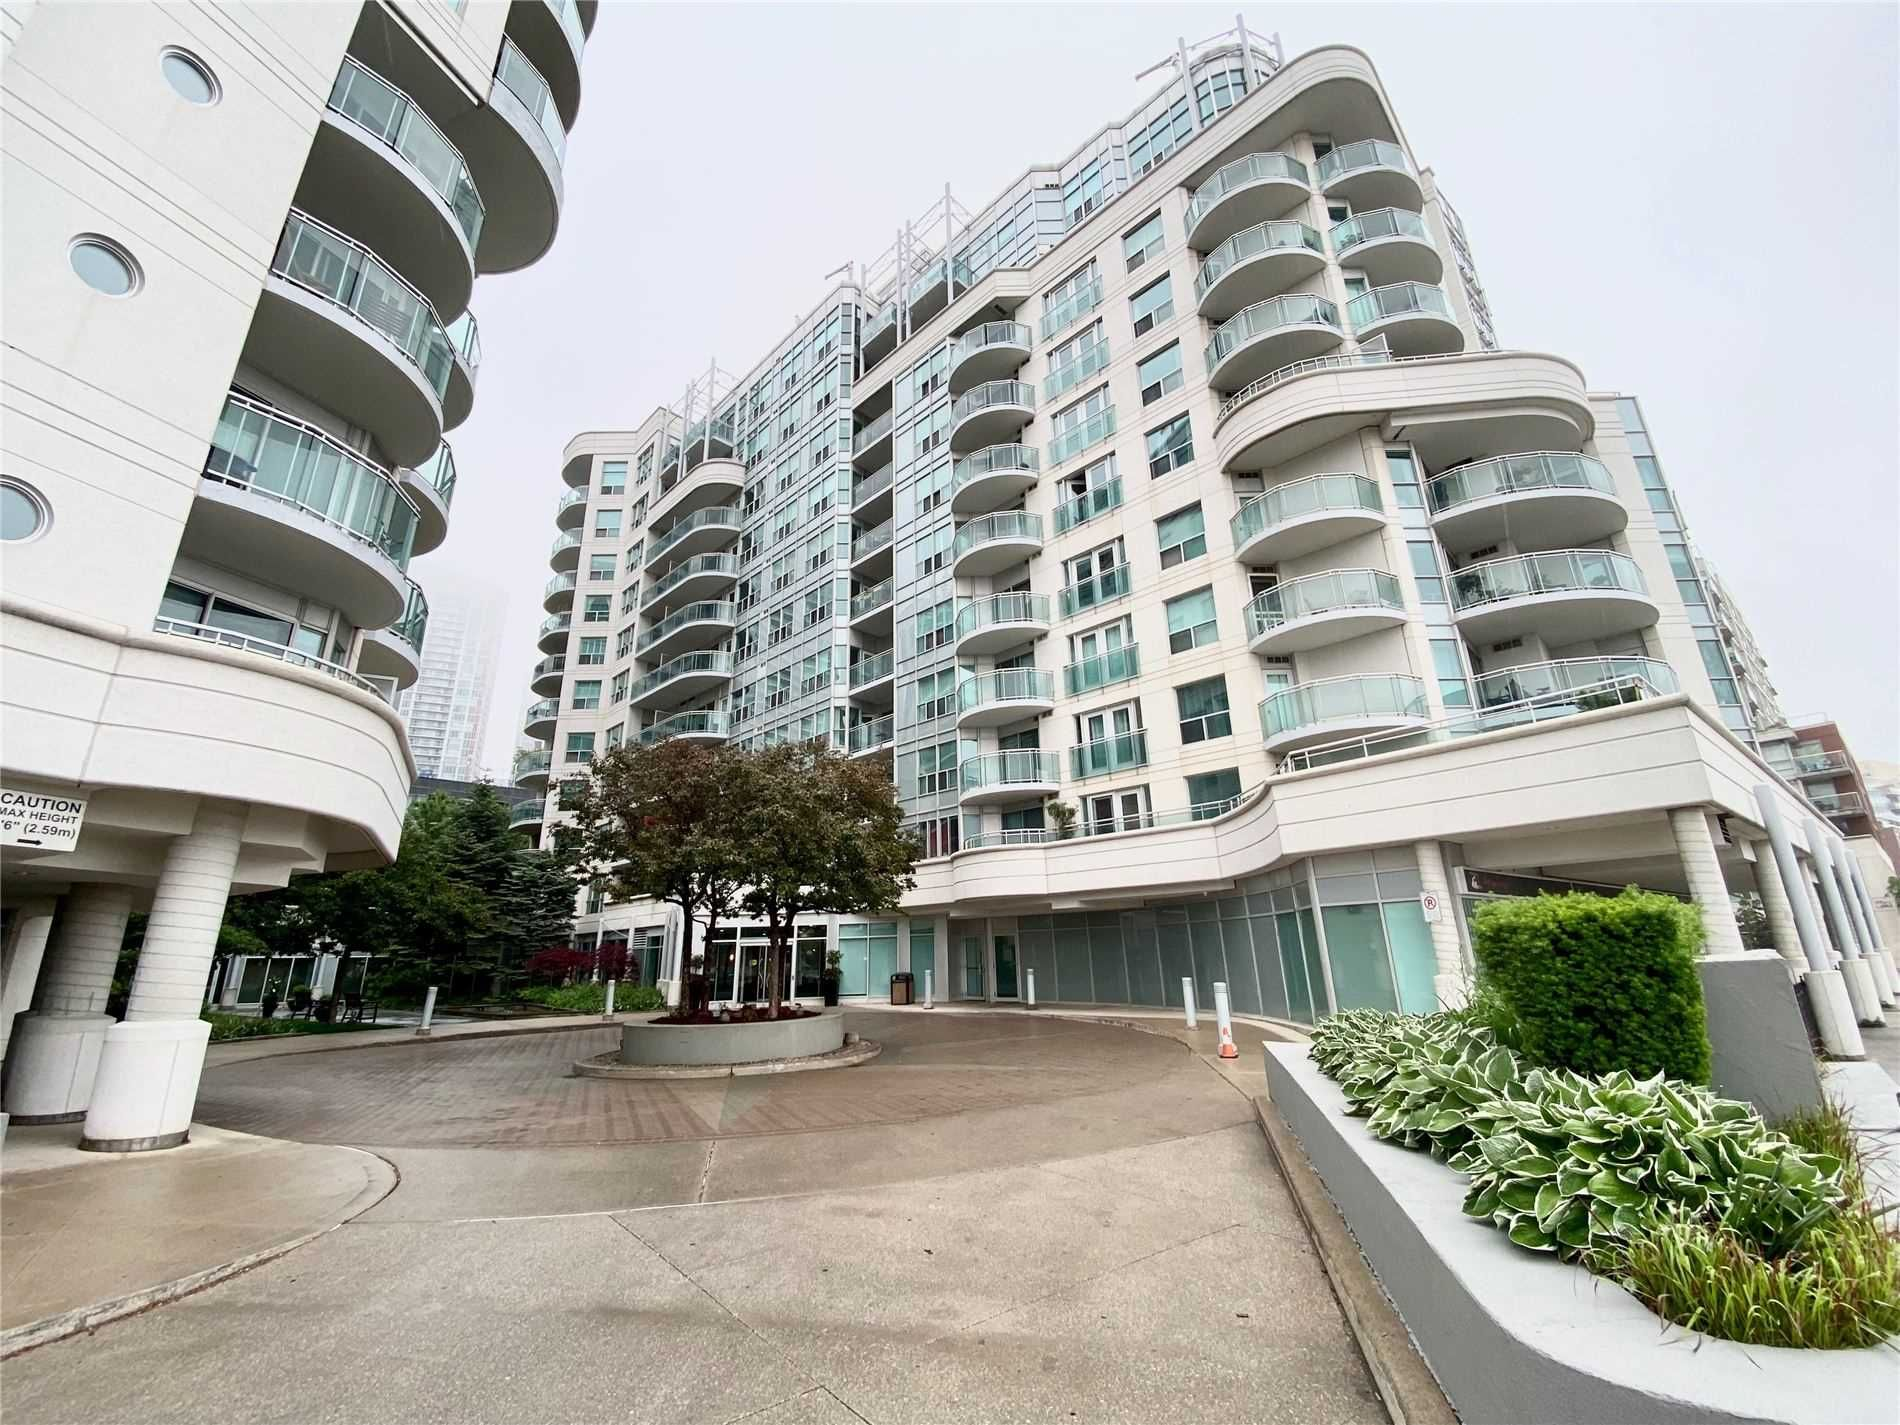 600 Queens Quay Ave W, unit 803 for rent in Toronto - image #1